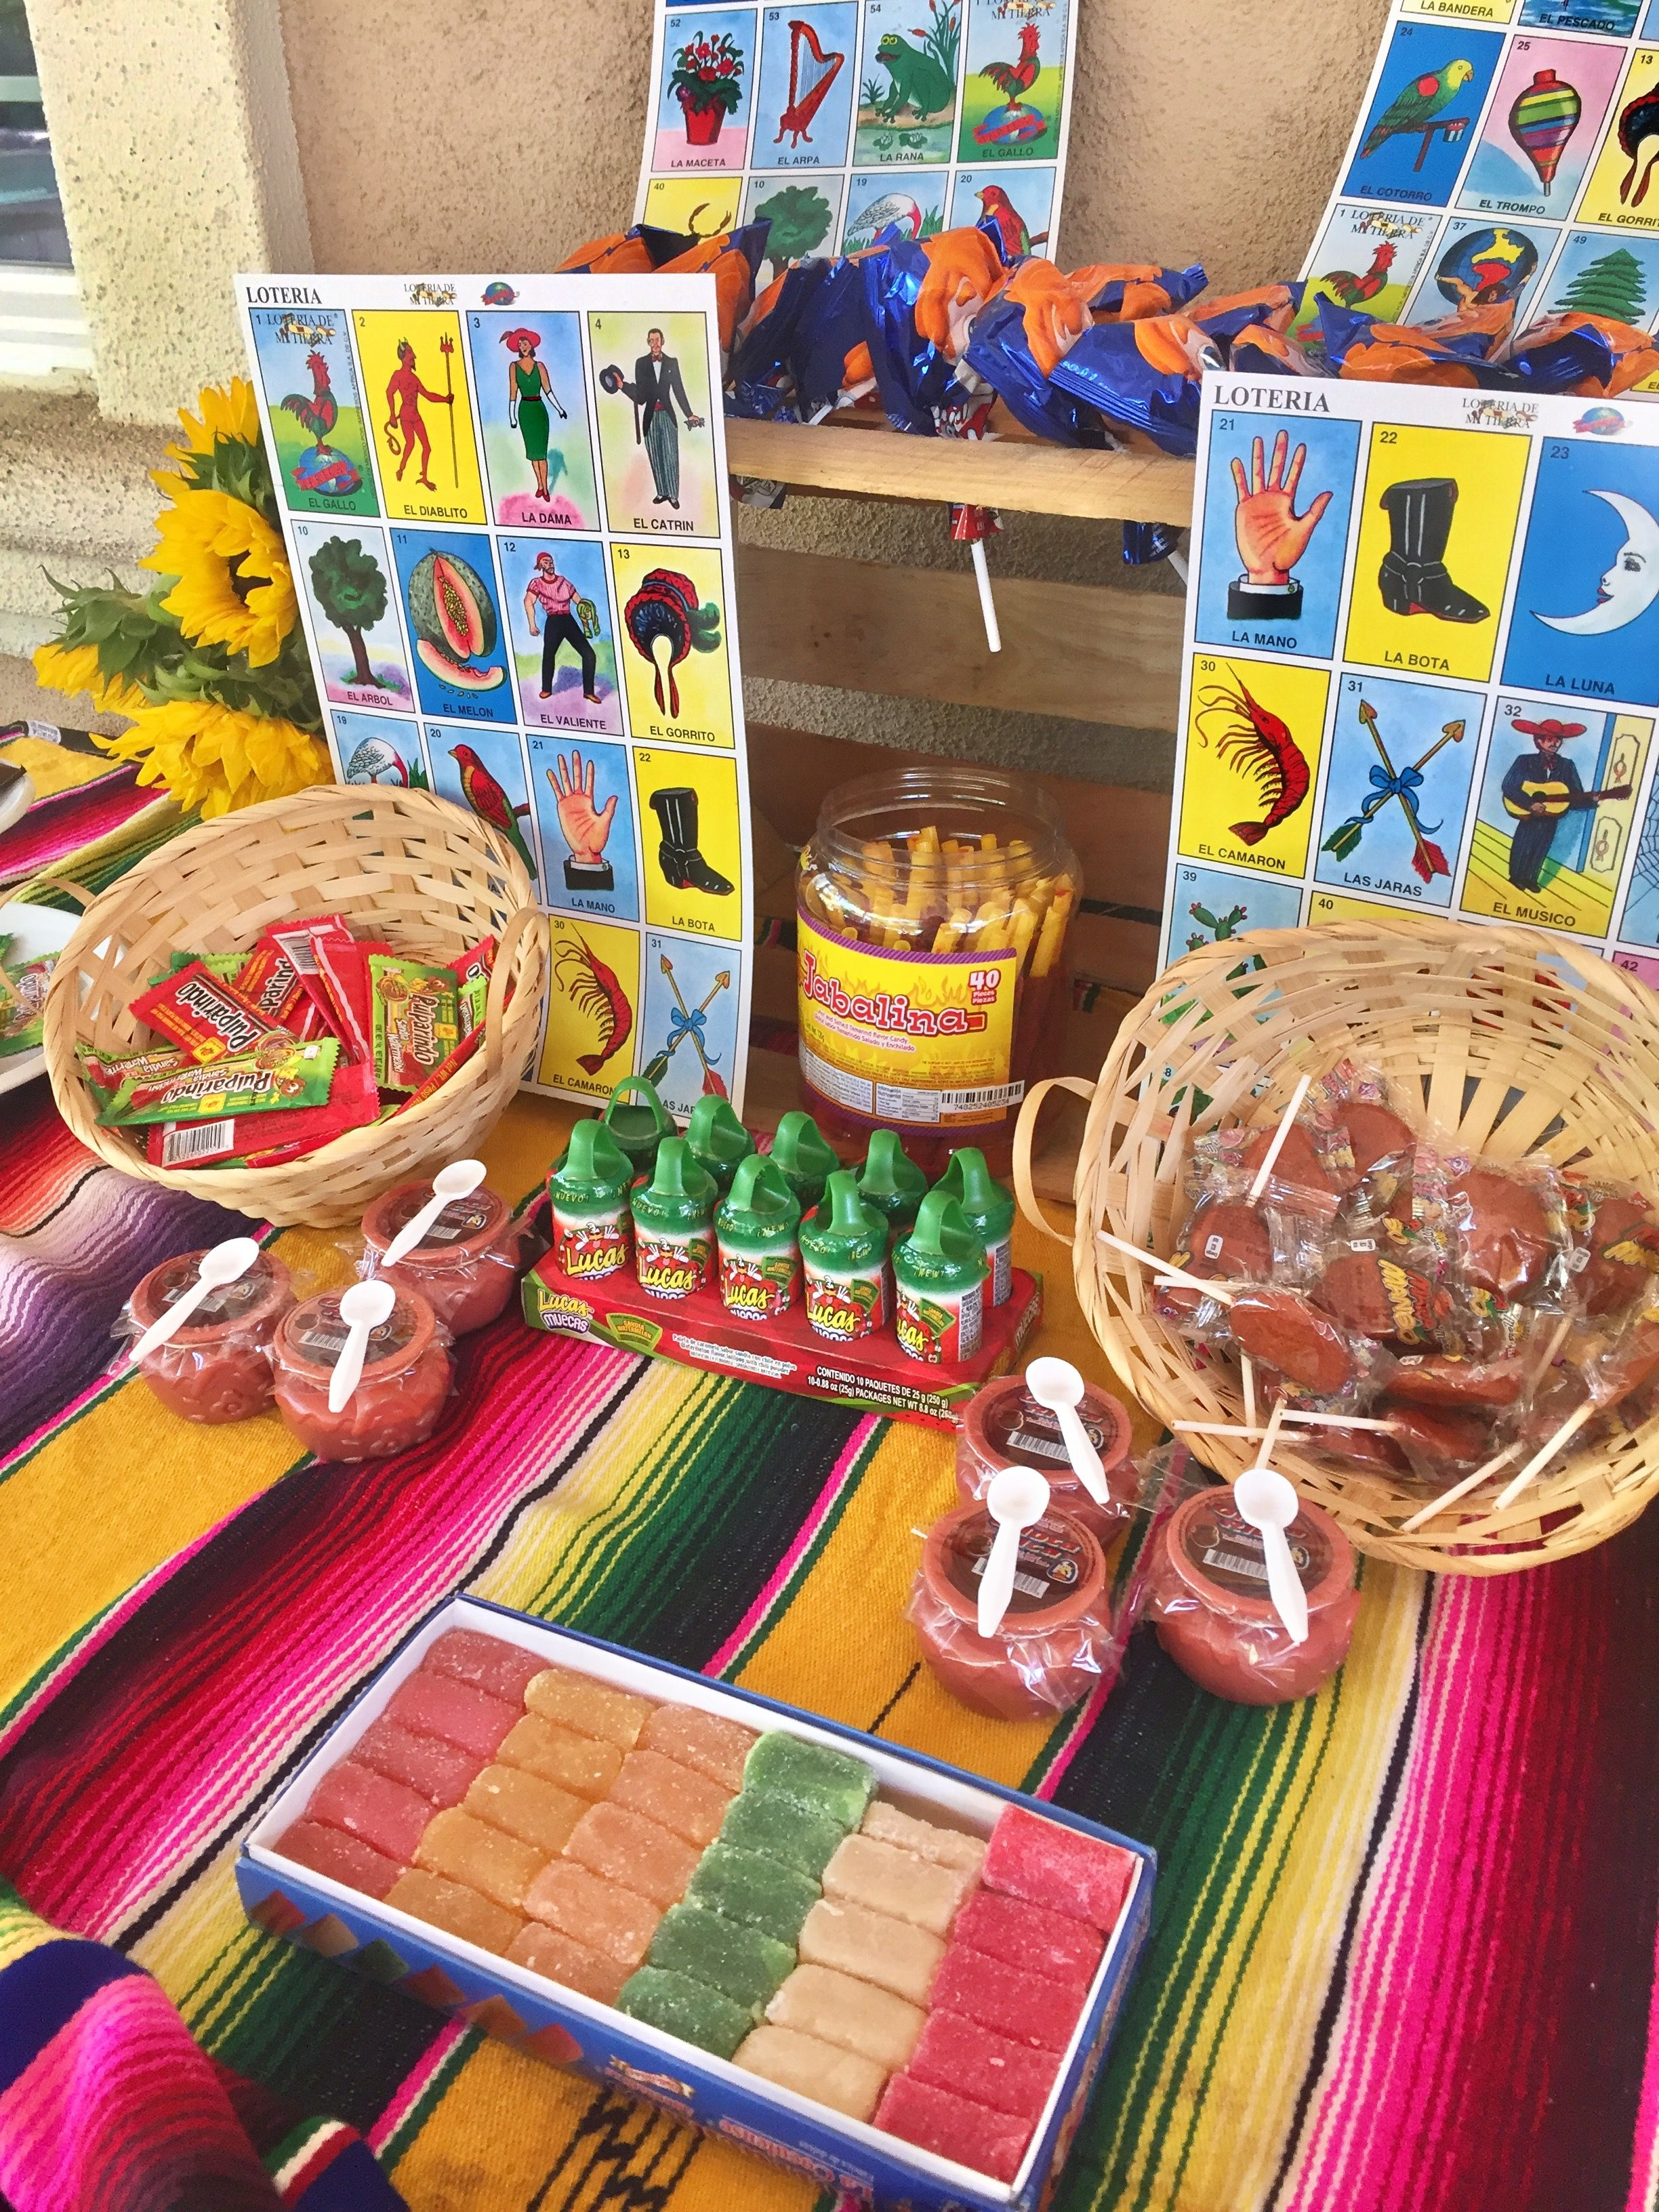 Fiesta mexicana mexican theme party our dessert table mexican candy and loter a cards for Decoracion kermes mexicana